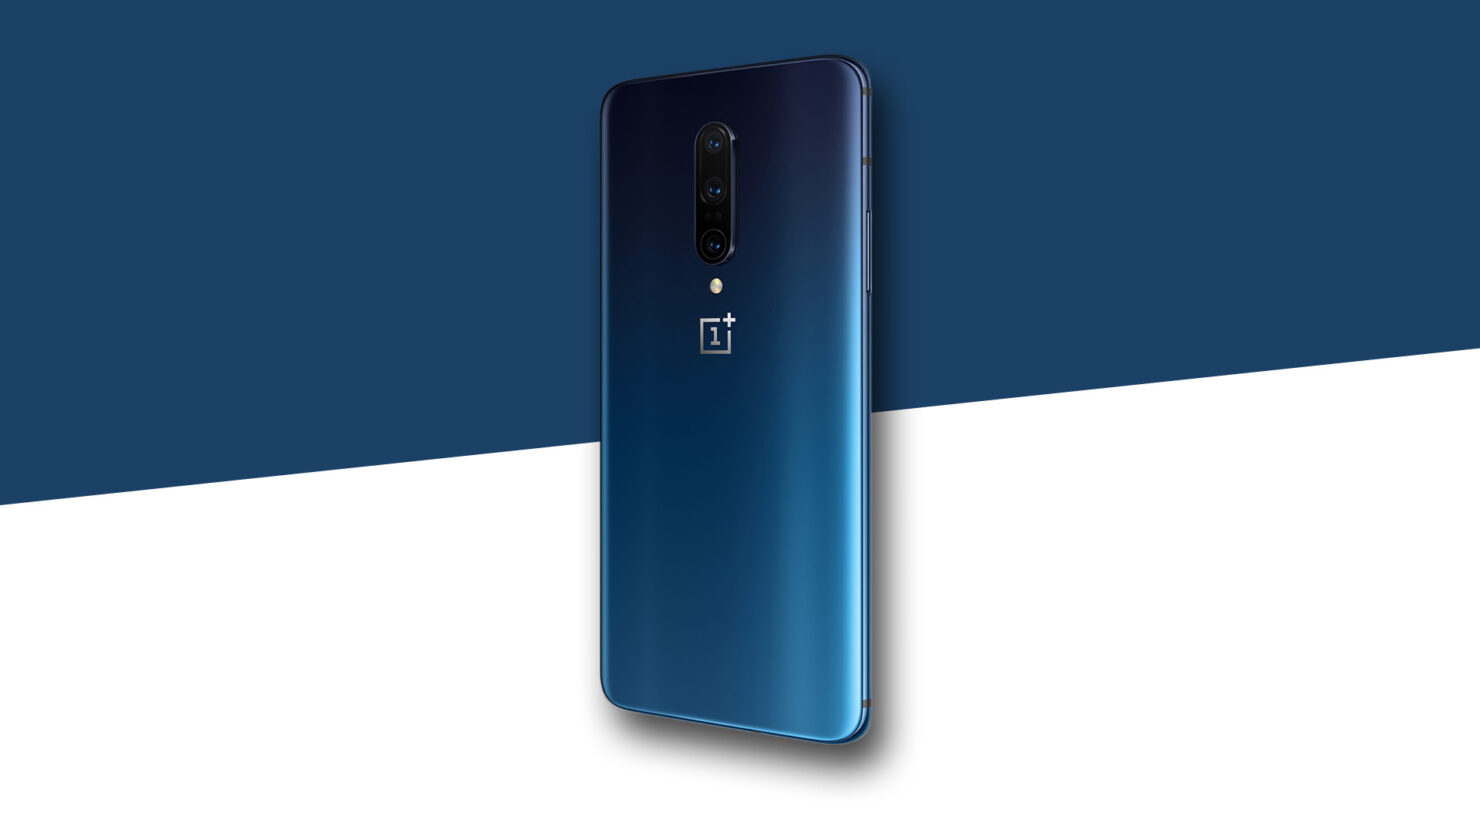 OnePlus 7 Pro and Pixel 3a help increase growth for their companies, according to Counterpoint Research